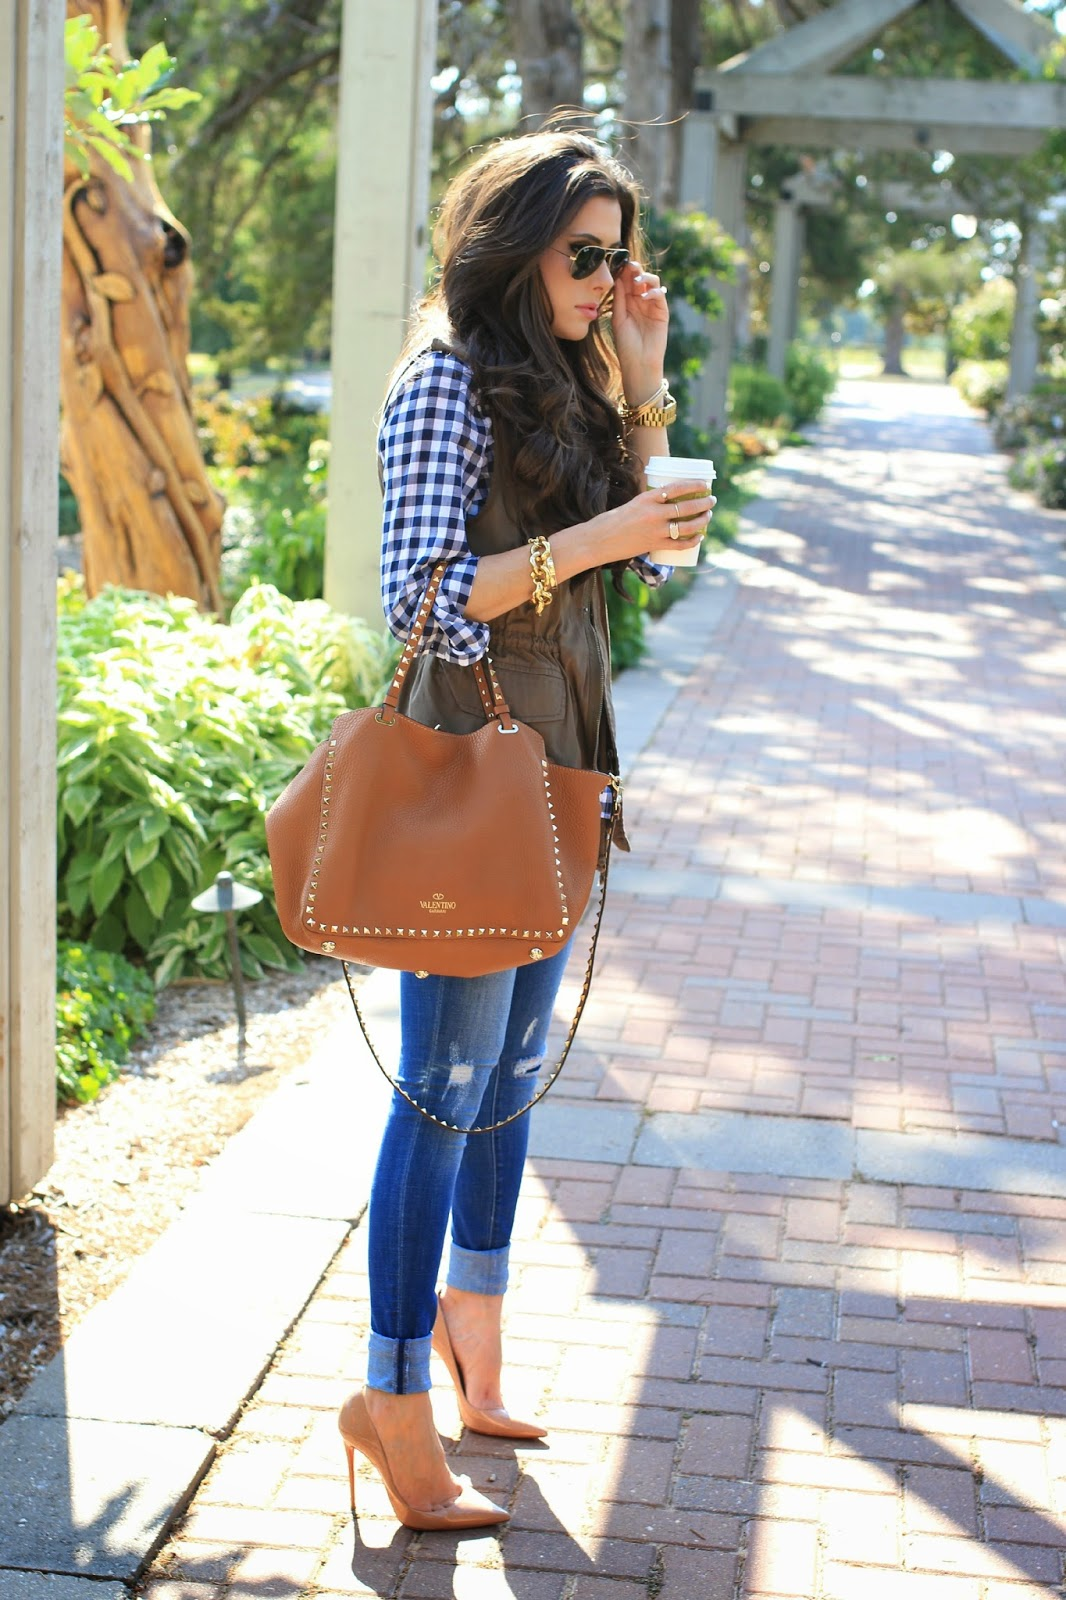 how to style a utility vest, utility vest outfit idea, pinterest fall outfit idea, valentino handbag outfit idea